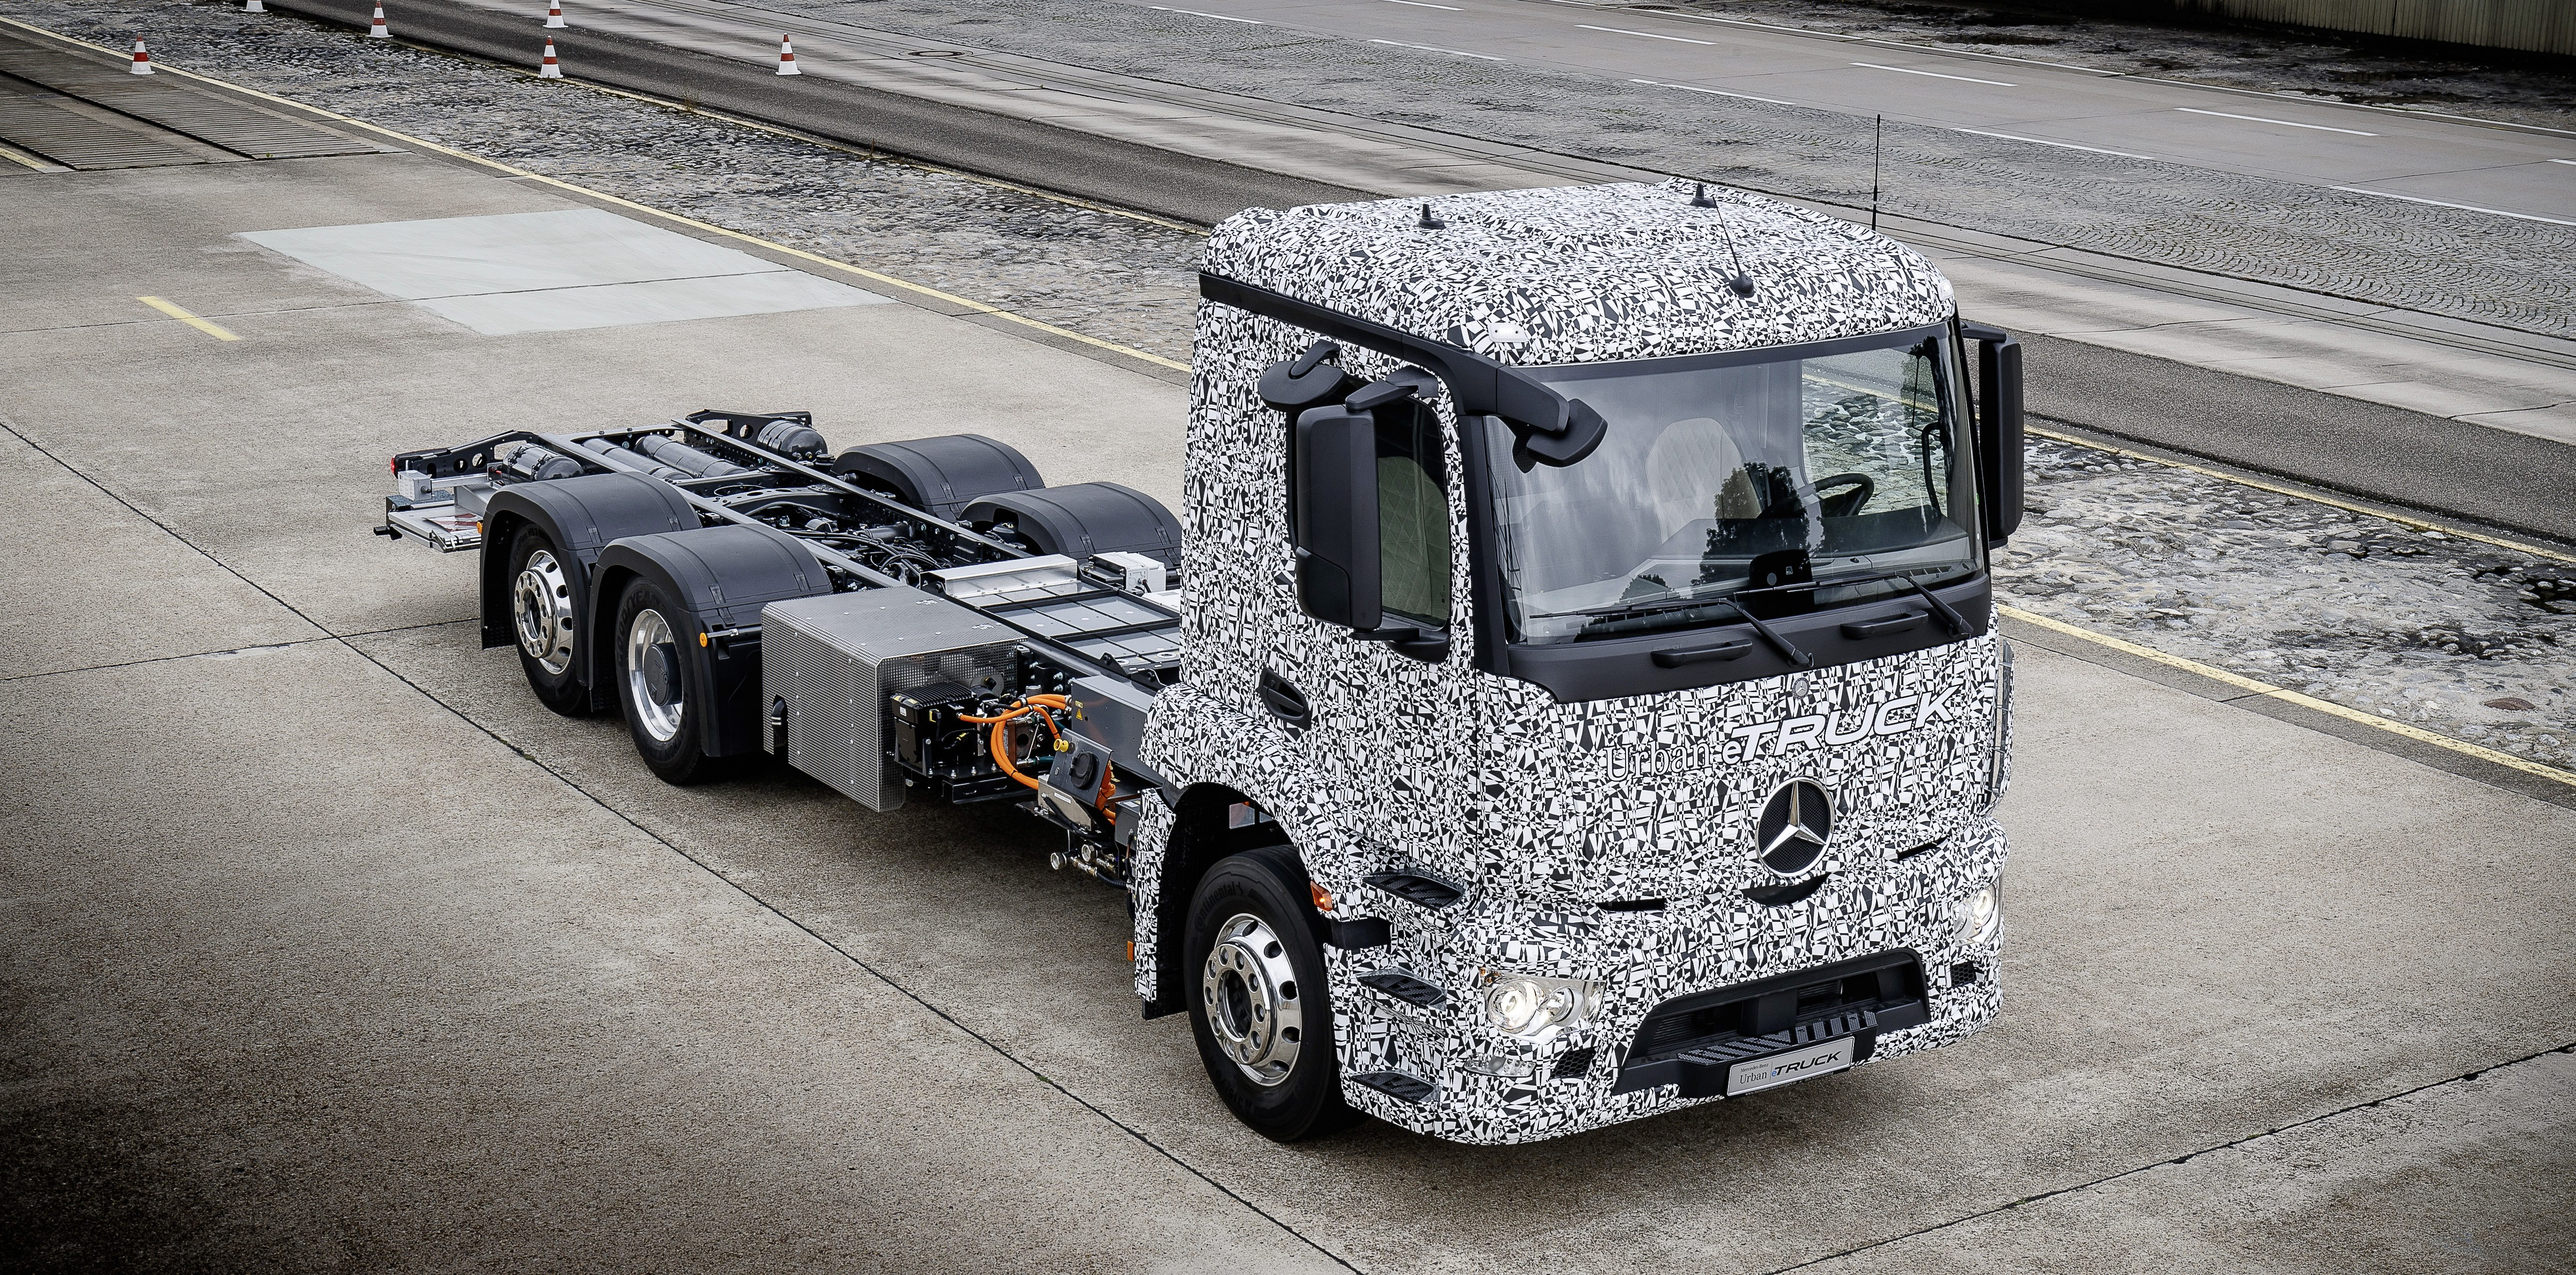 The prototype of the Urban eTruck electric truck from Mercedes-Benz 98